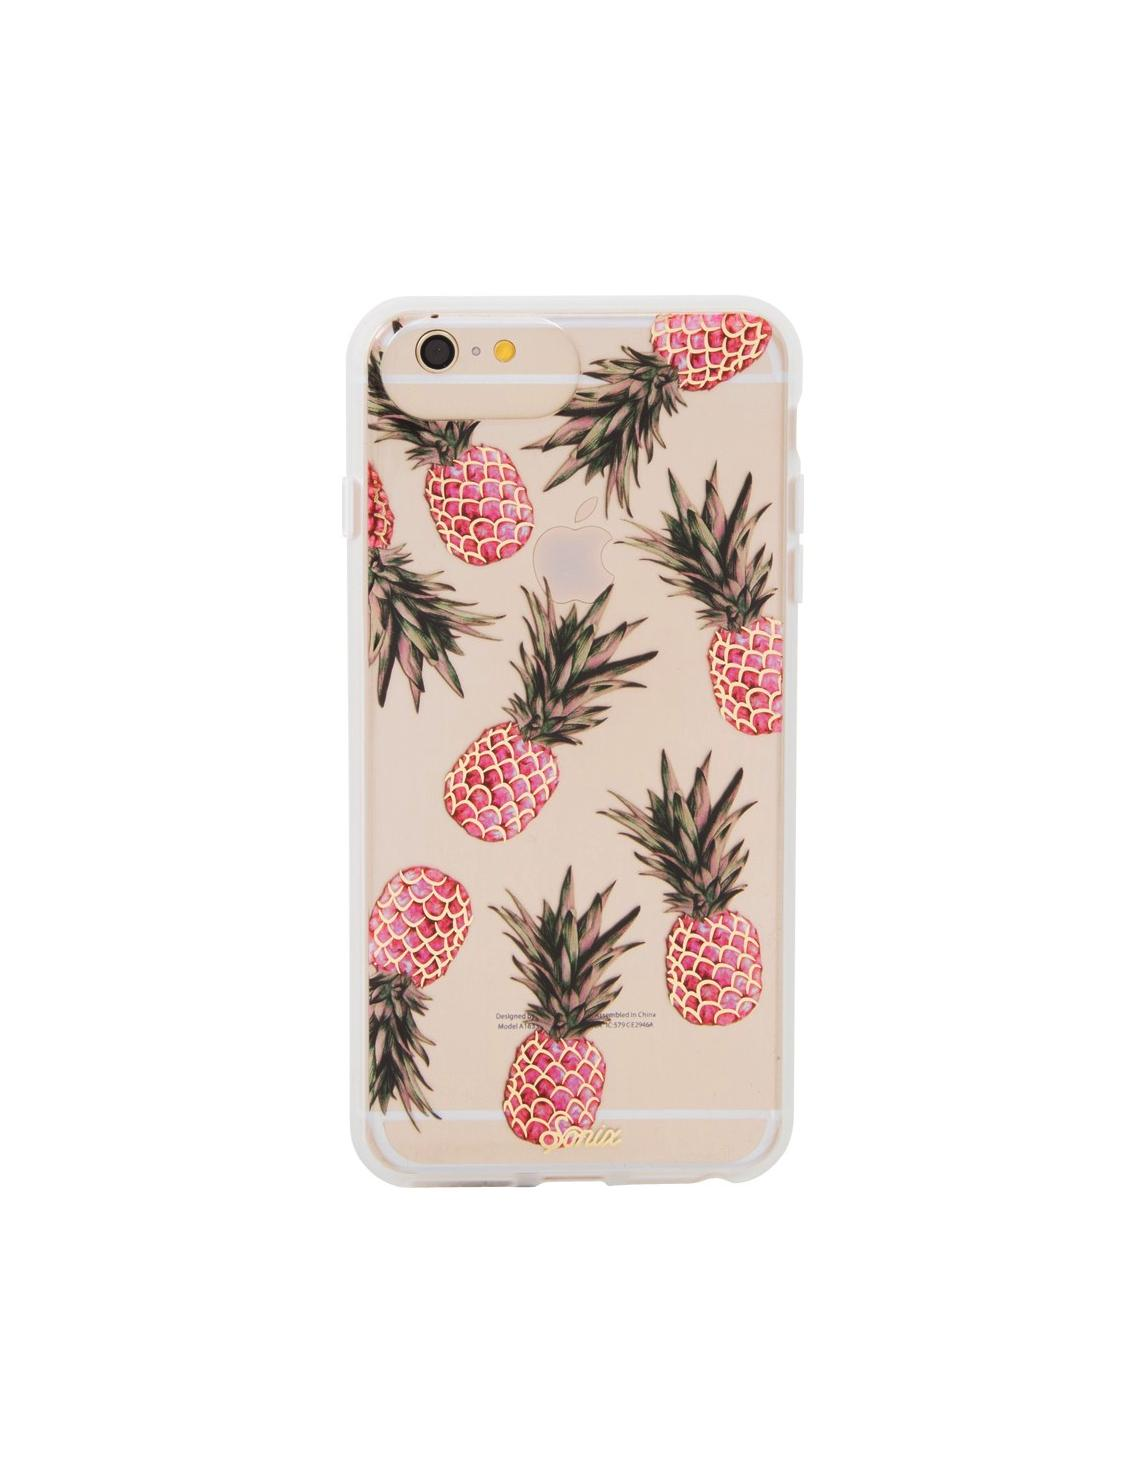 Women outfit in a phone case rental from Sonix called Piña Colada Phone Case